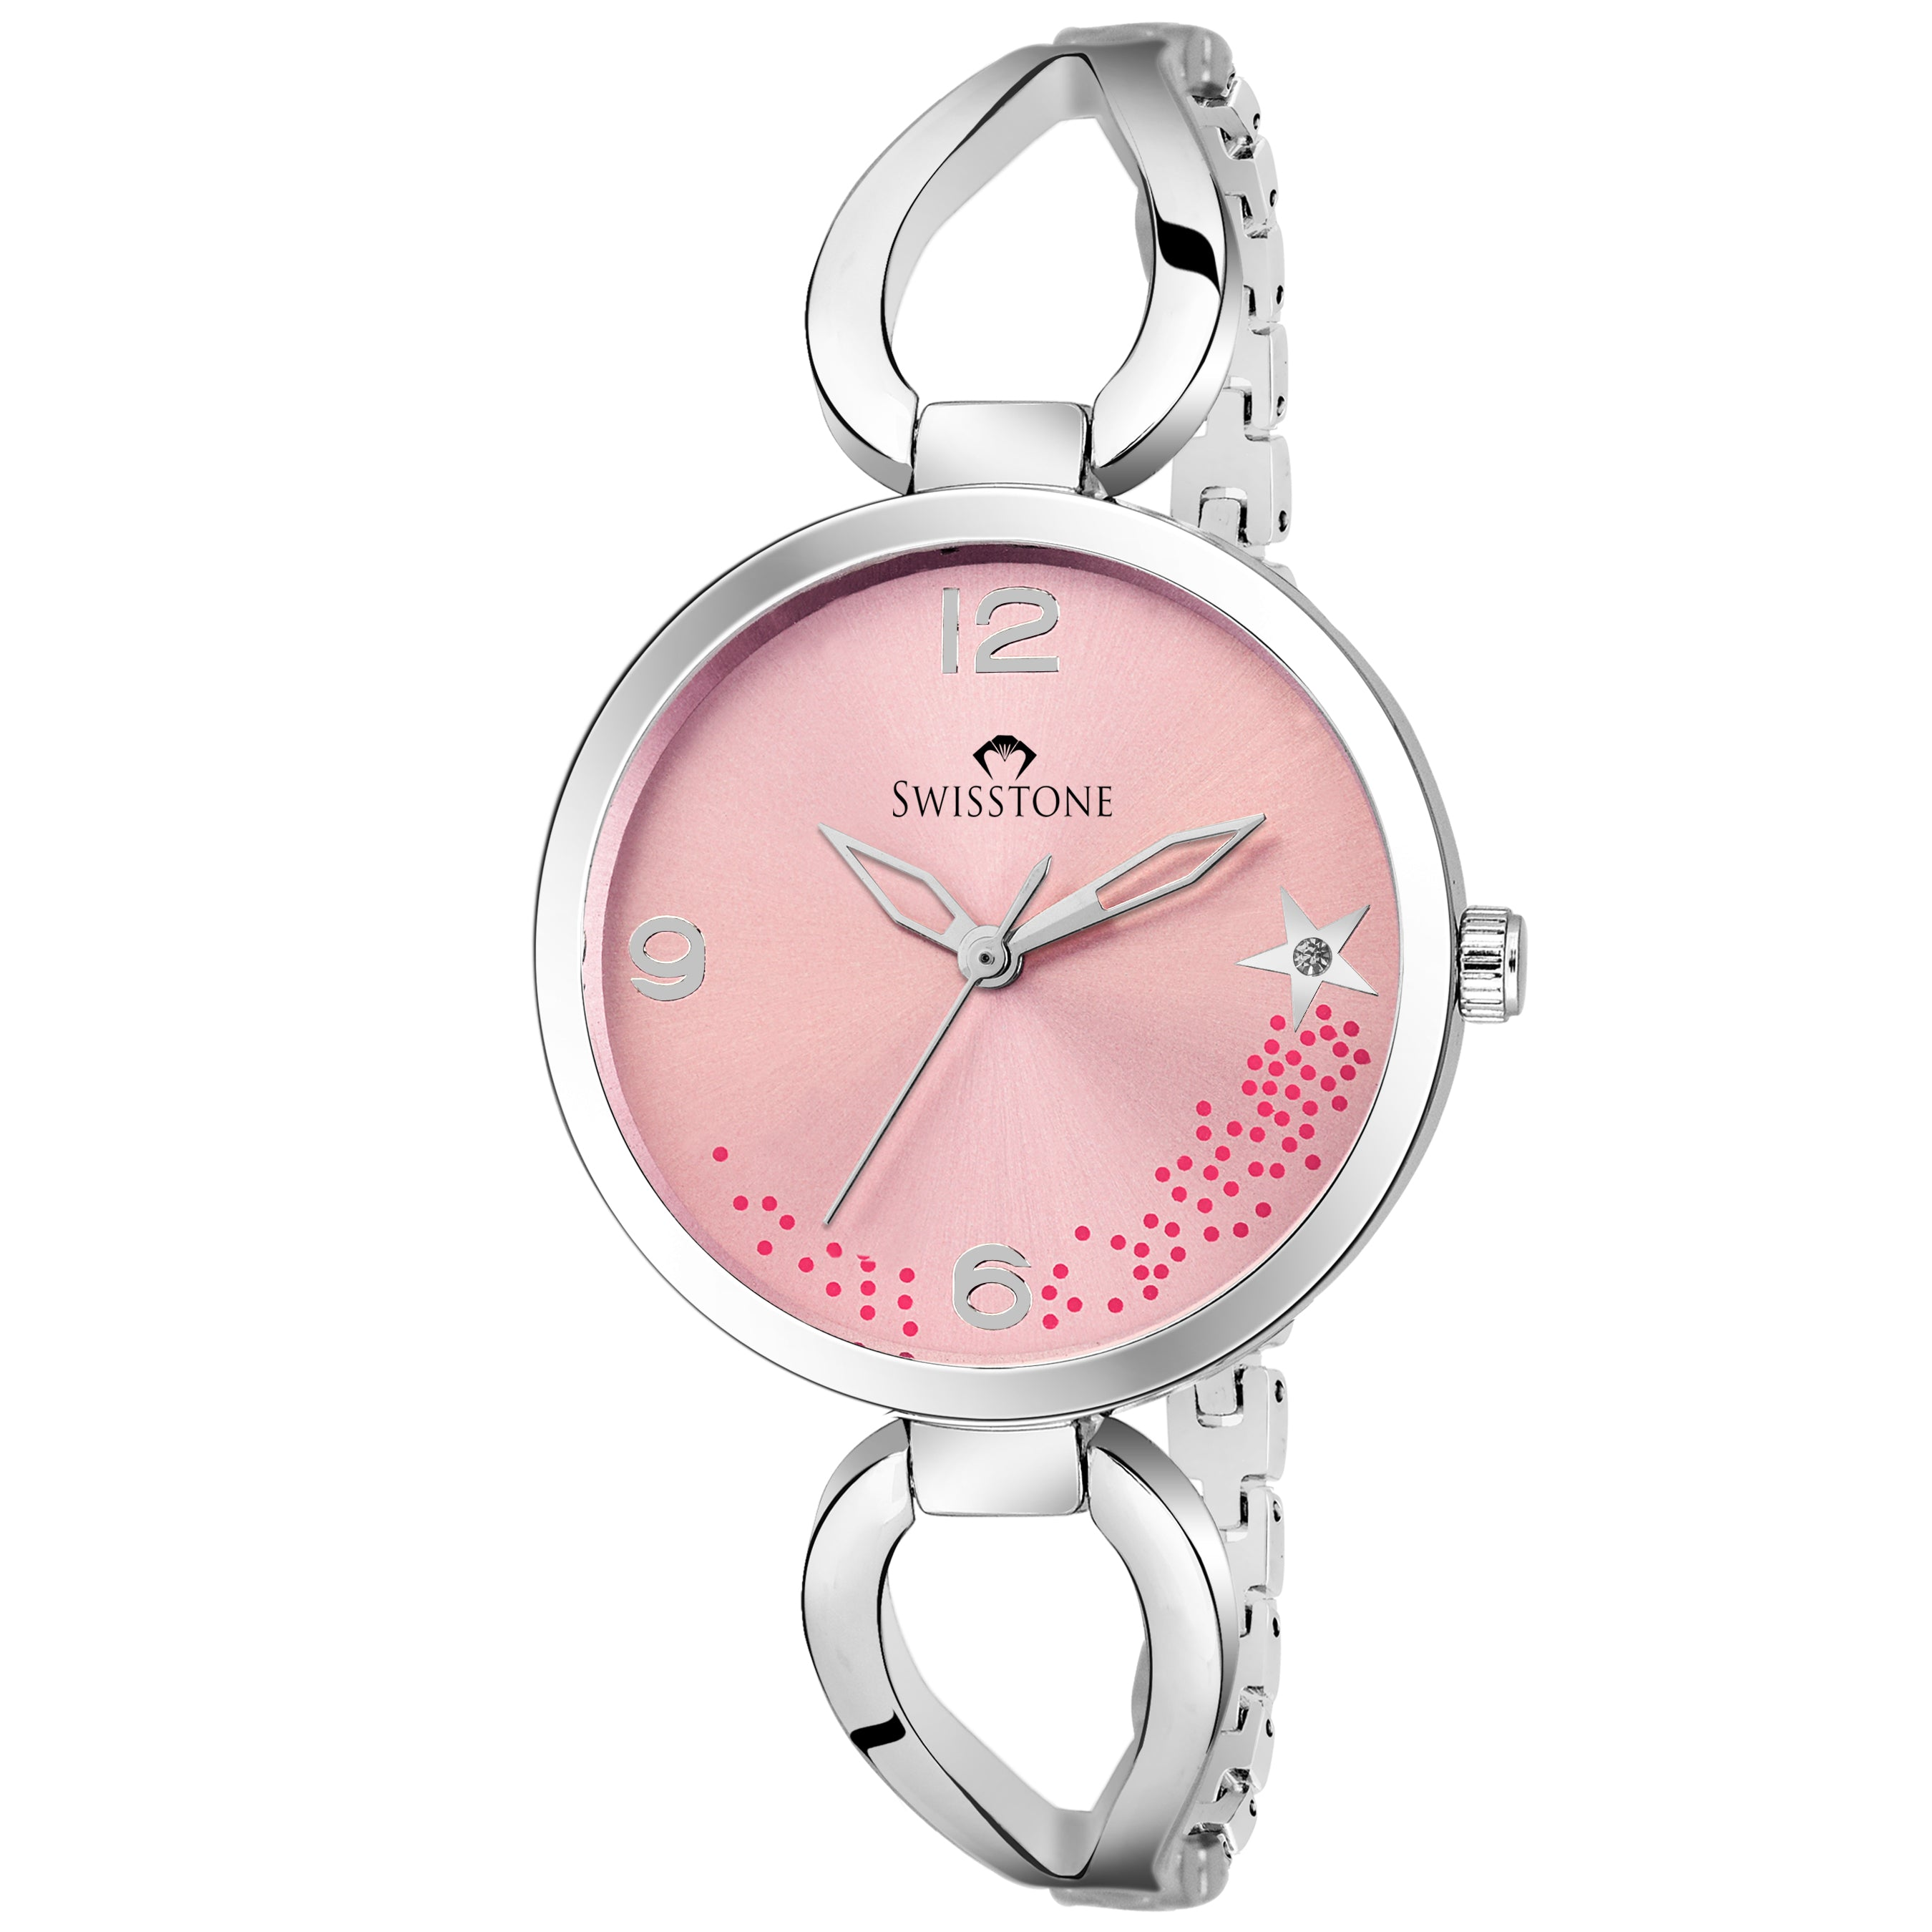 Swisstone DZL153-PNK Wrist Watch for Women